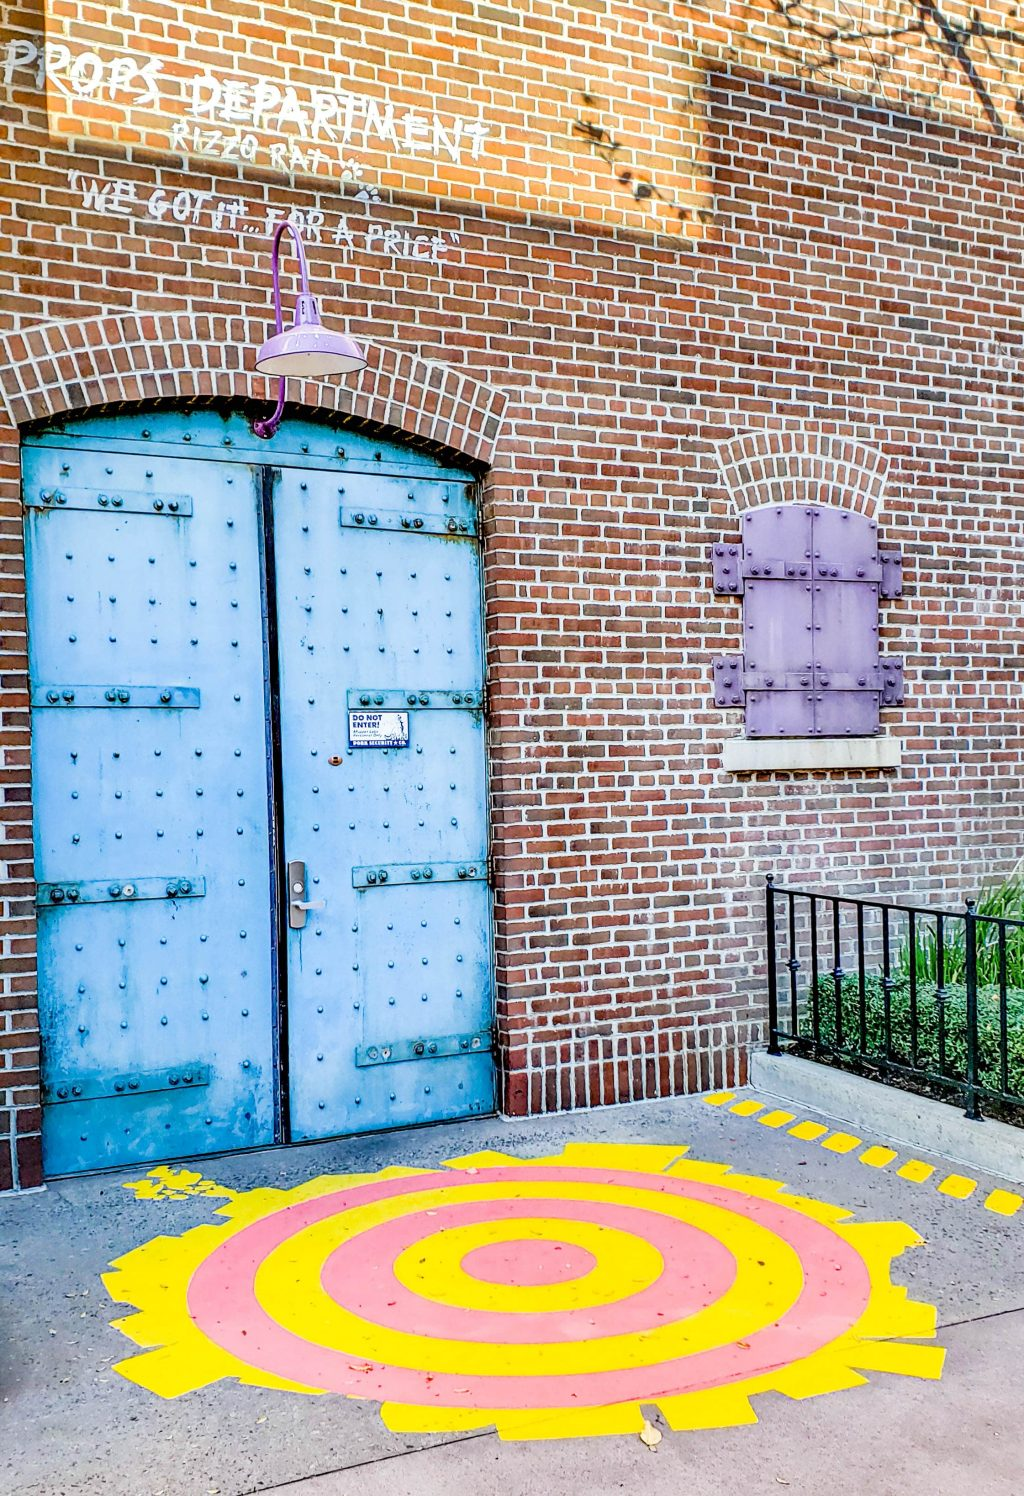 A bright blue door on a brick wall. The ground has a red target with a giant yellow paint splotch.